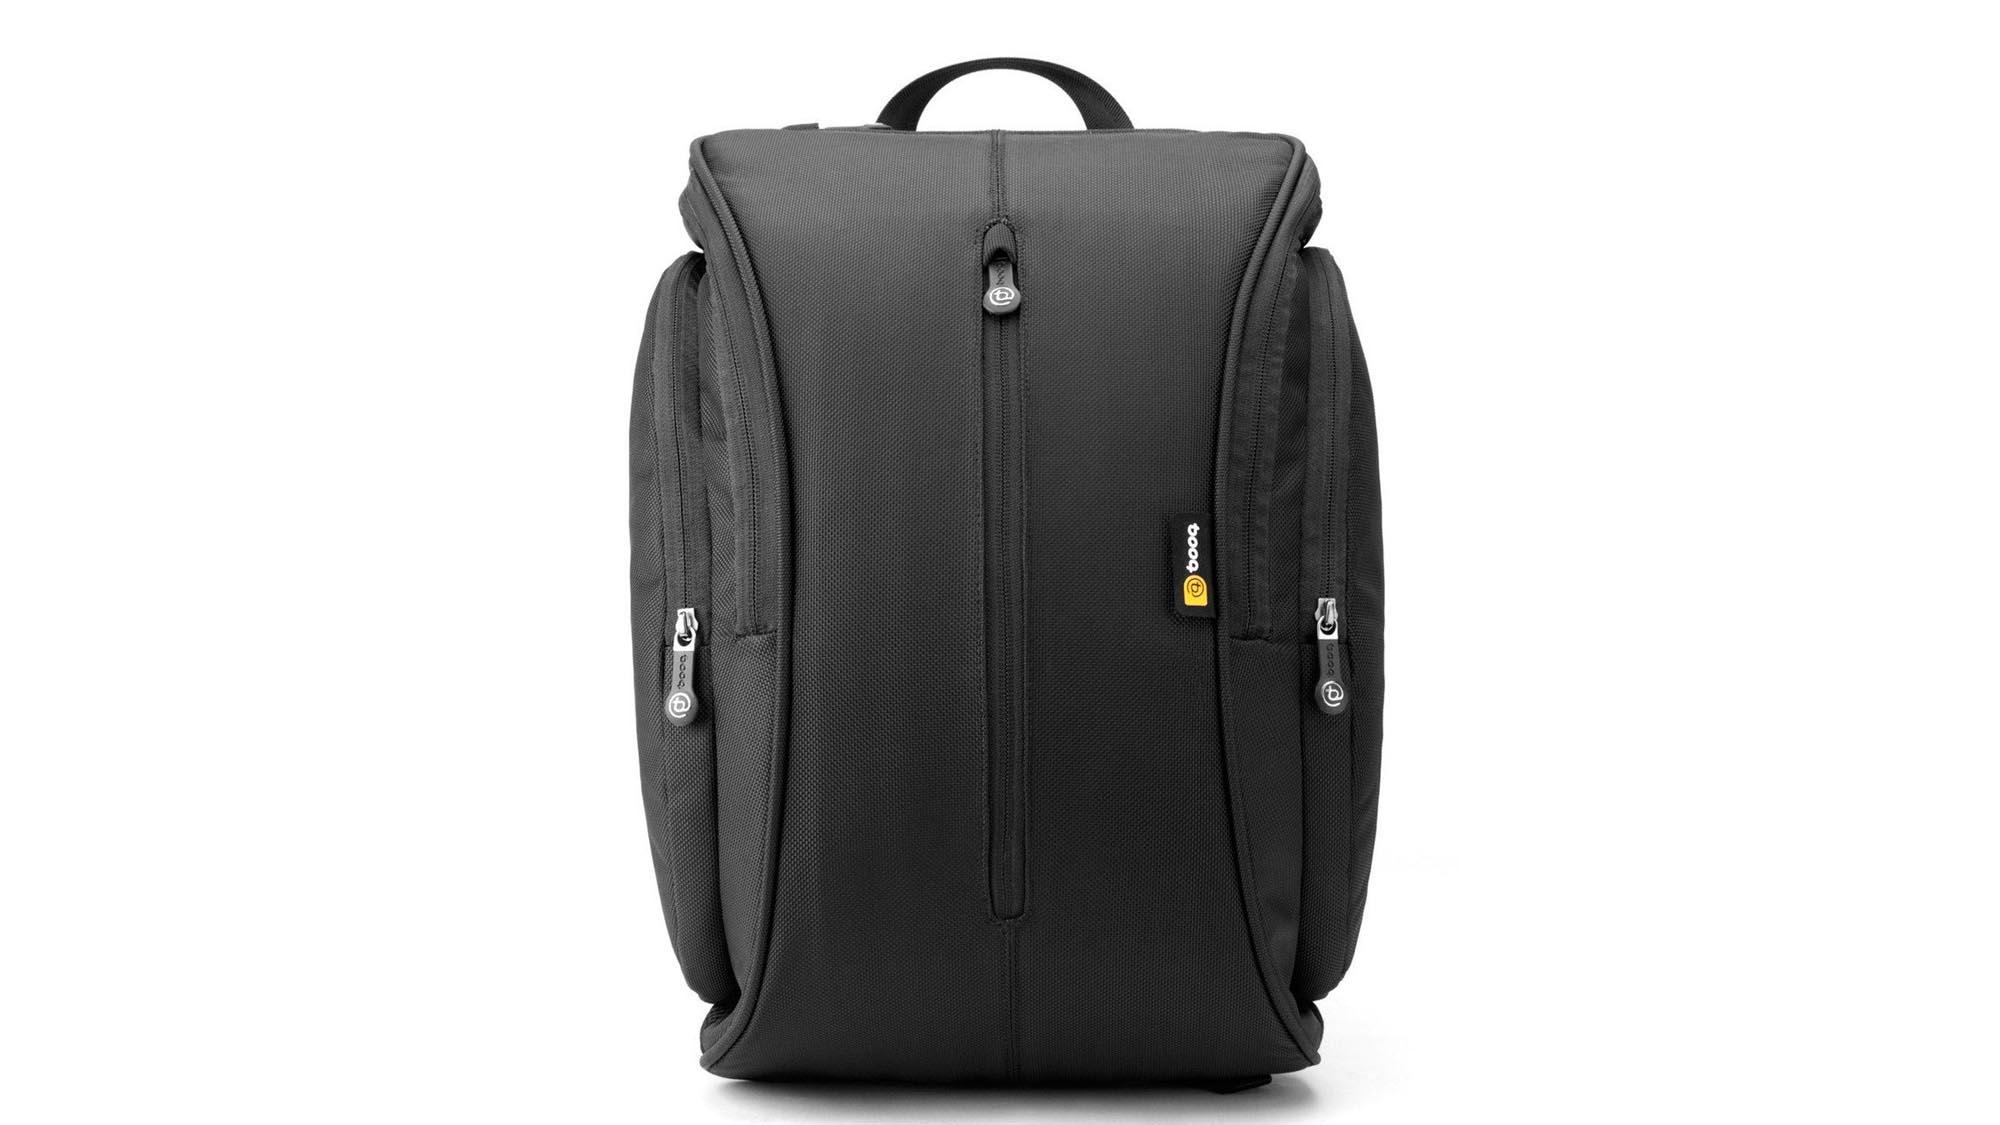 Laptop Sleeve Or Backpack - CEAGESP